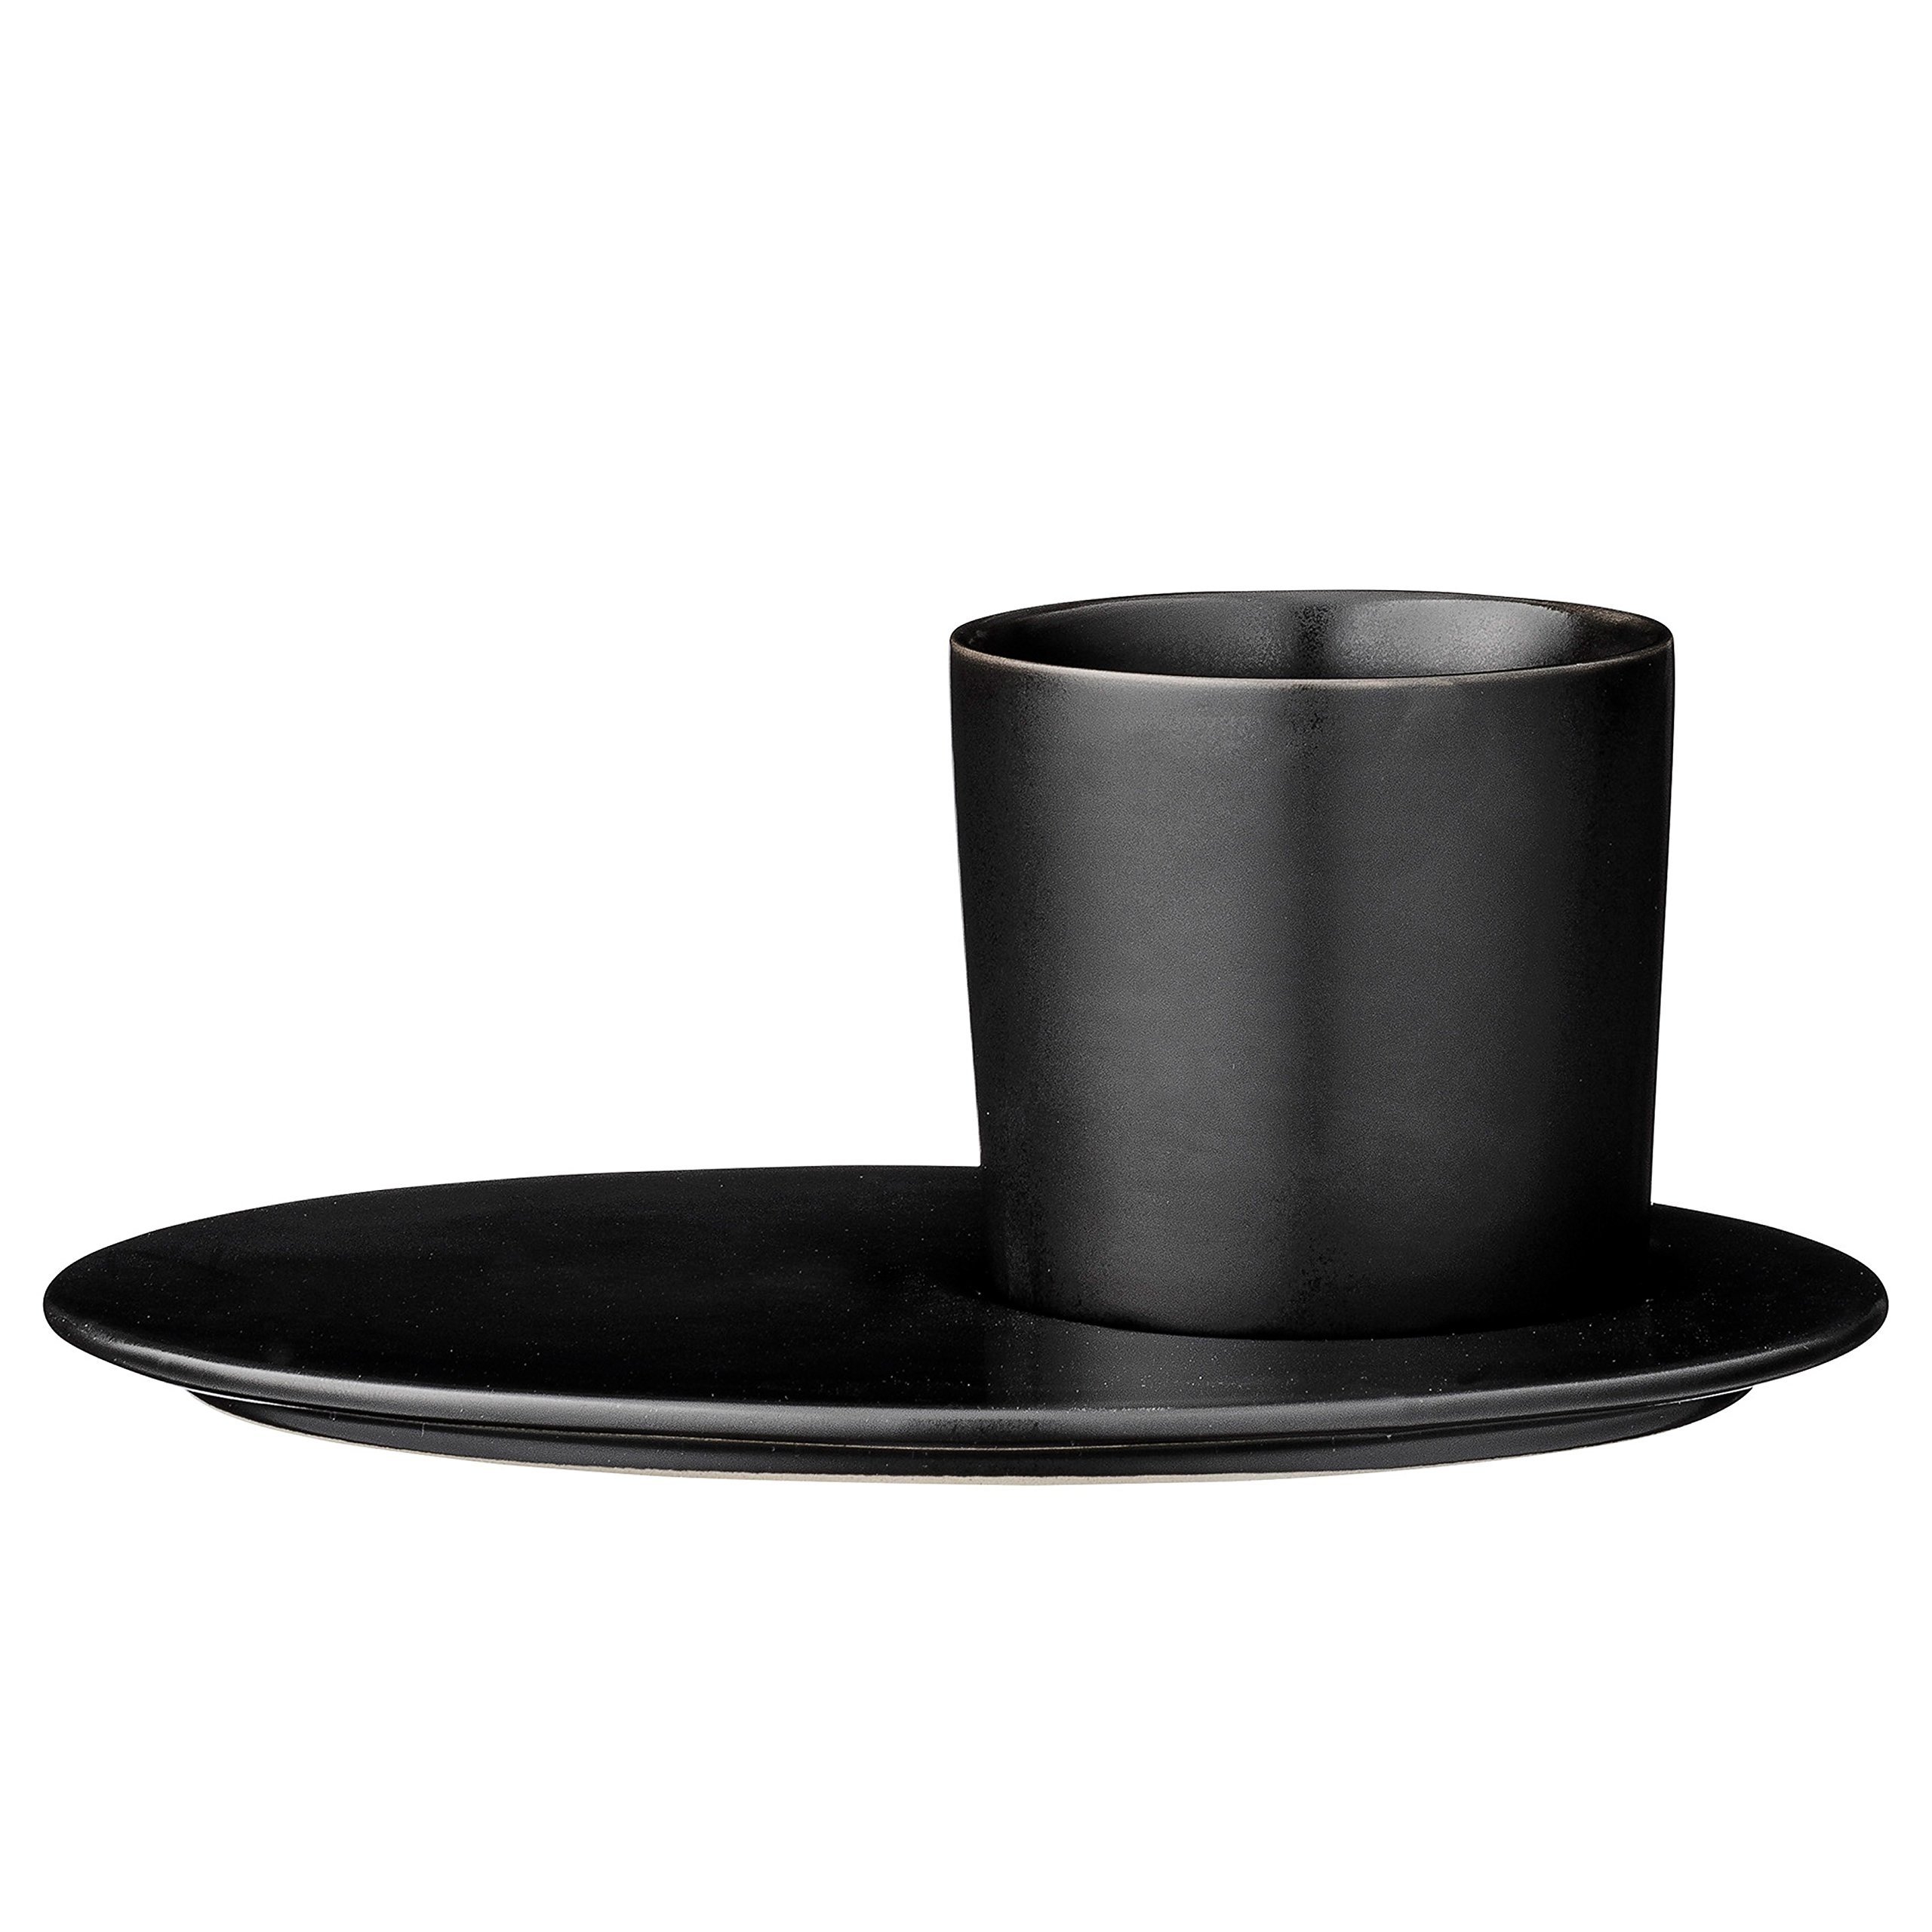 Bloomingville A21100592 Ceramic Gitte Plate and Cup Set, Black